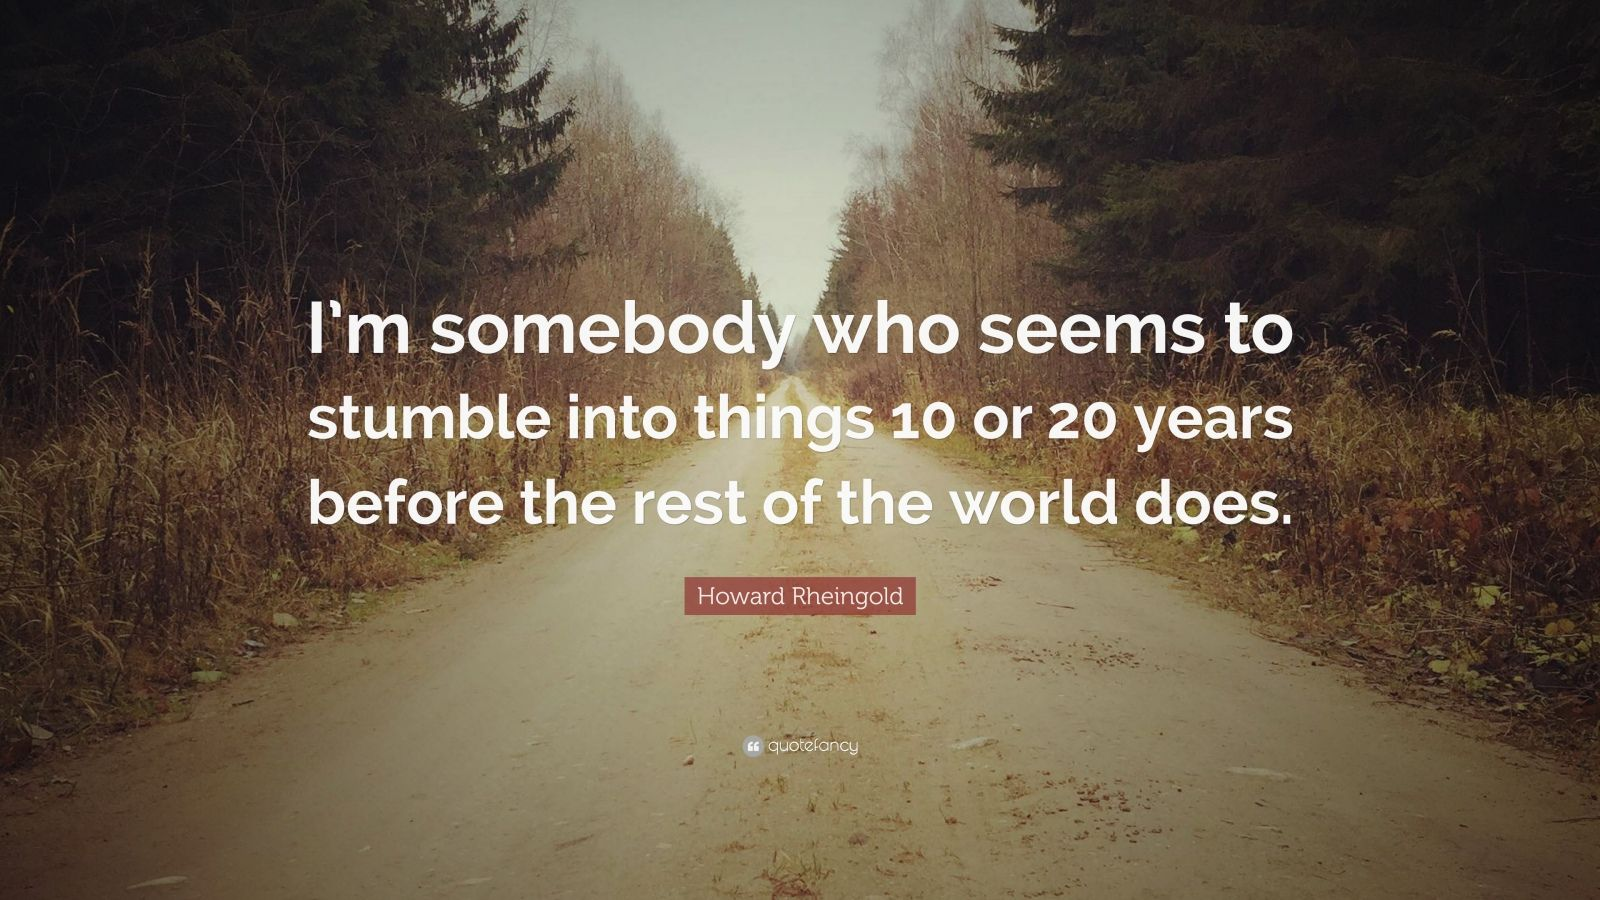 """Howard Rheingold Quote: """"I'm somebody who seems to stumble into things 10 or 20 years before the rest of the world does."""""""